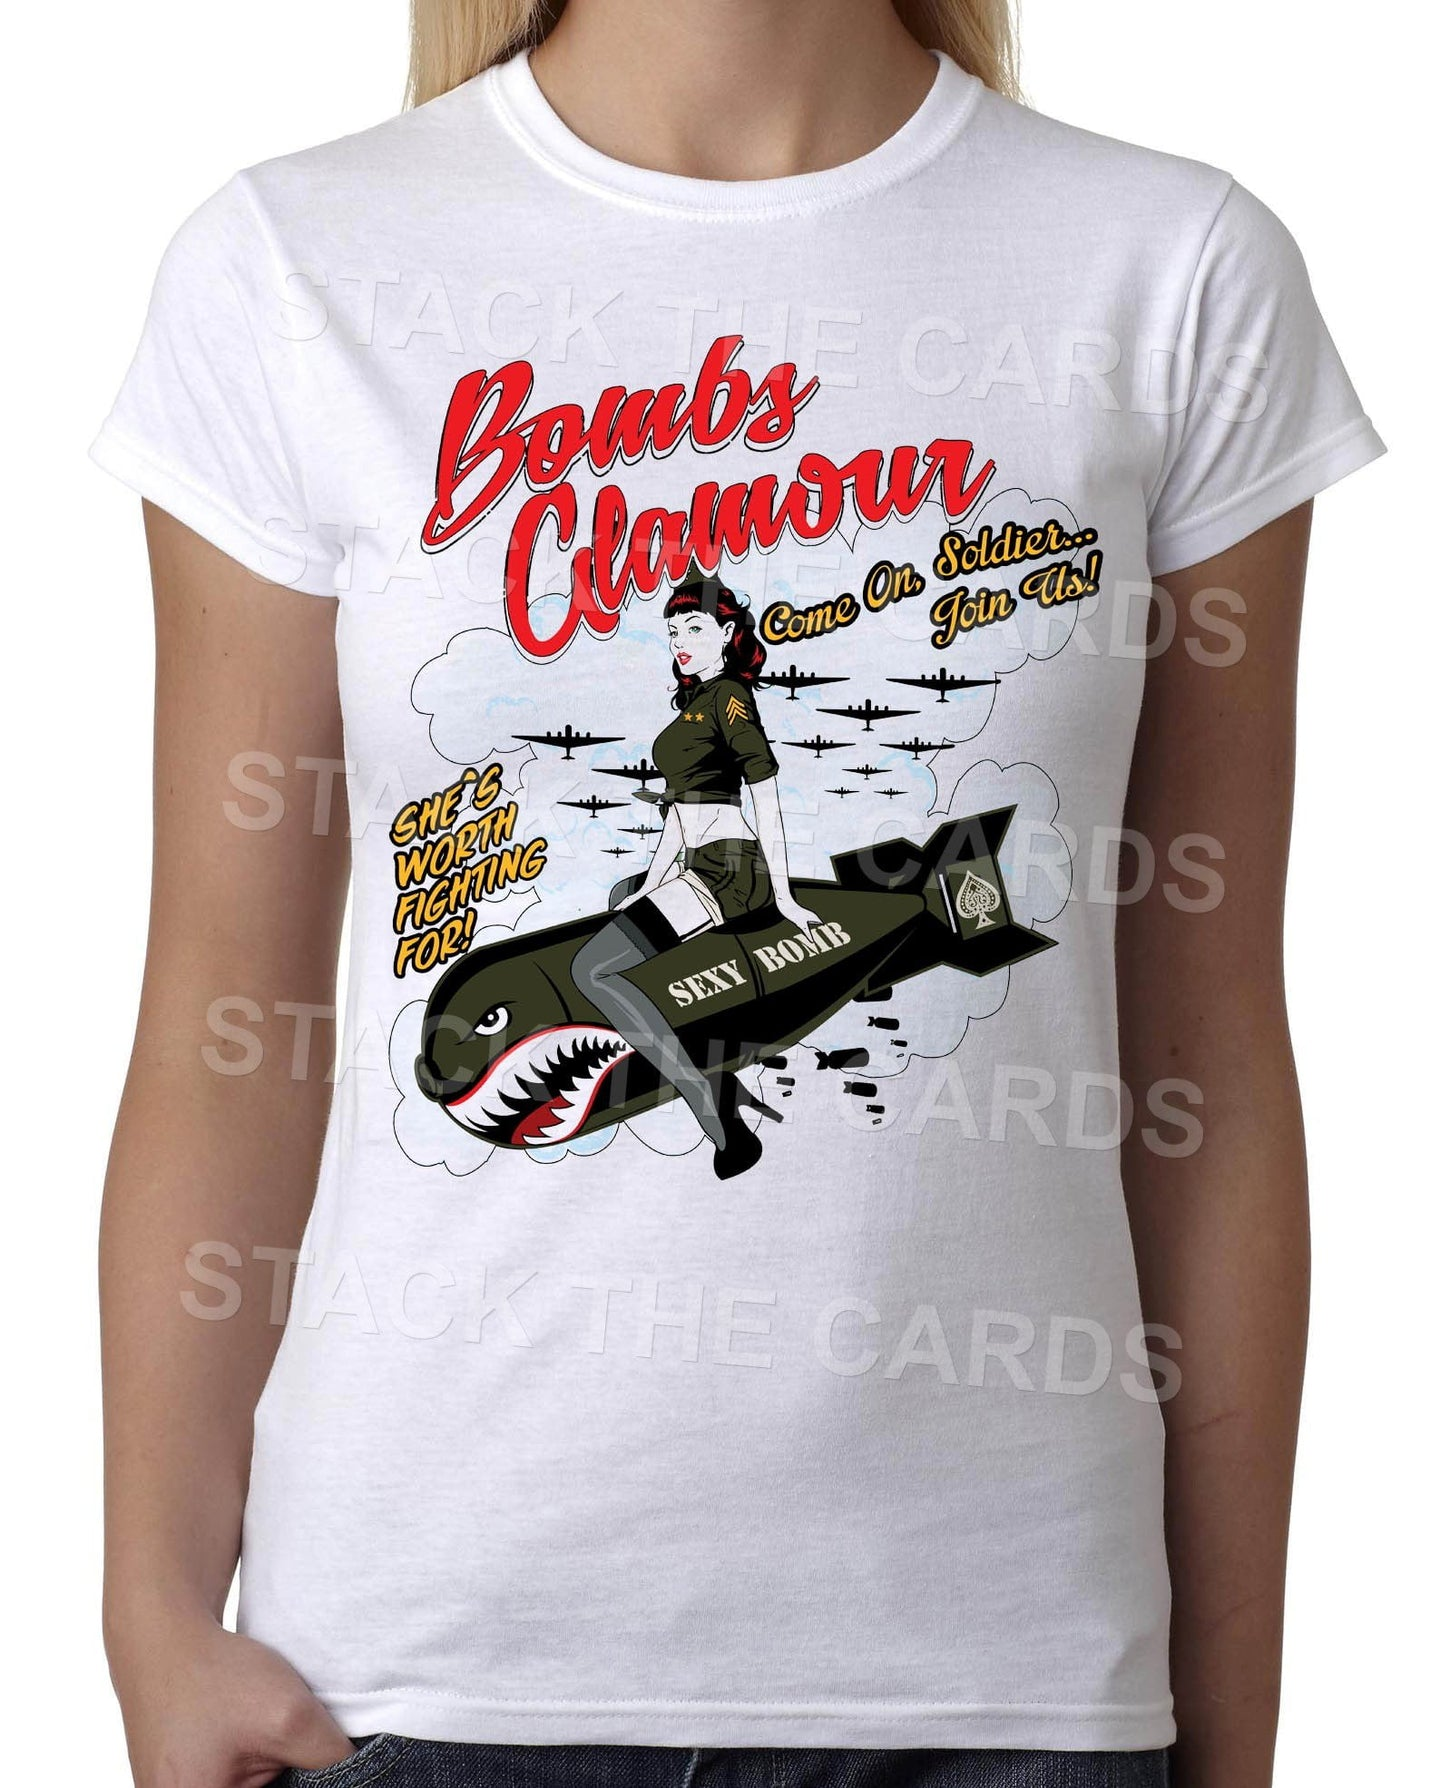 Bombs Glamour Pin Up Girl - Womens White T-Shirt - Geek Retro Fun Kitsch Cute - Stack The Cards - [variant_title]